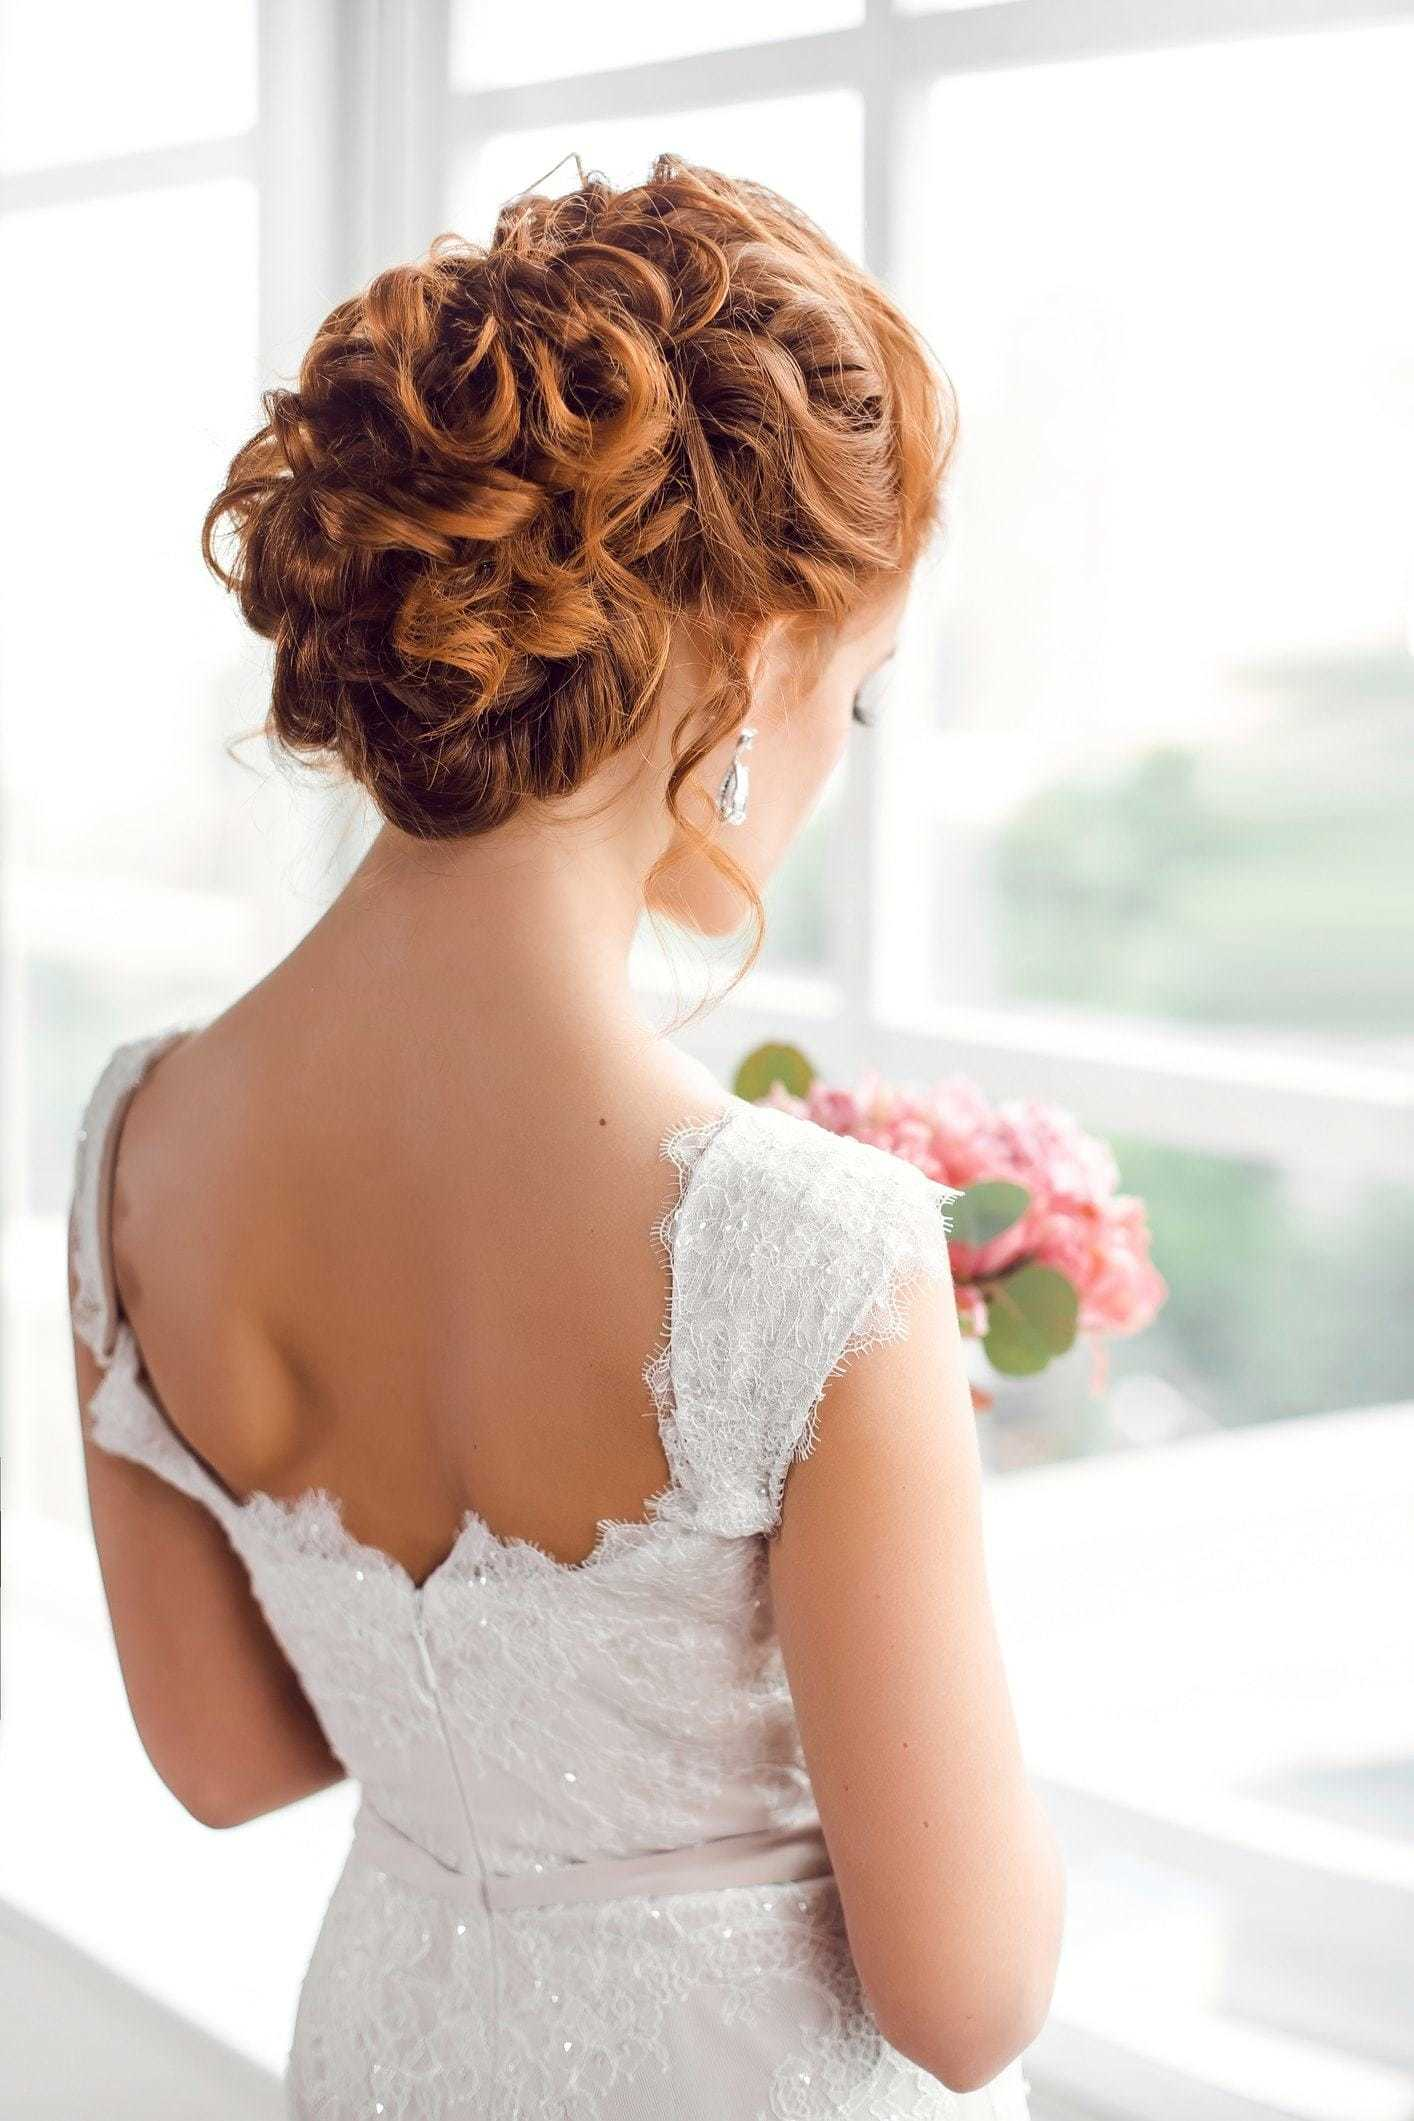 Curly wedding hair: Back view of a redhead bride with her hair in a curly pinned updo